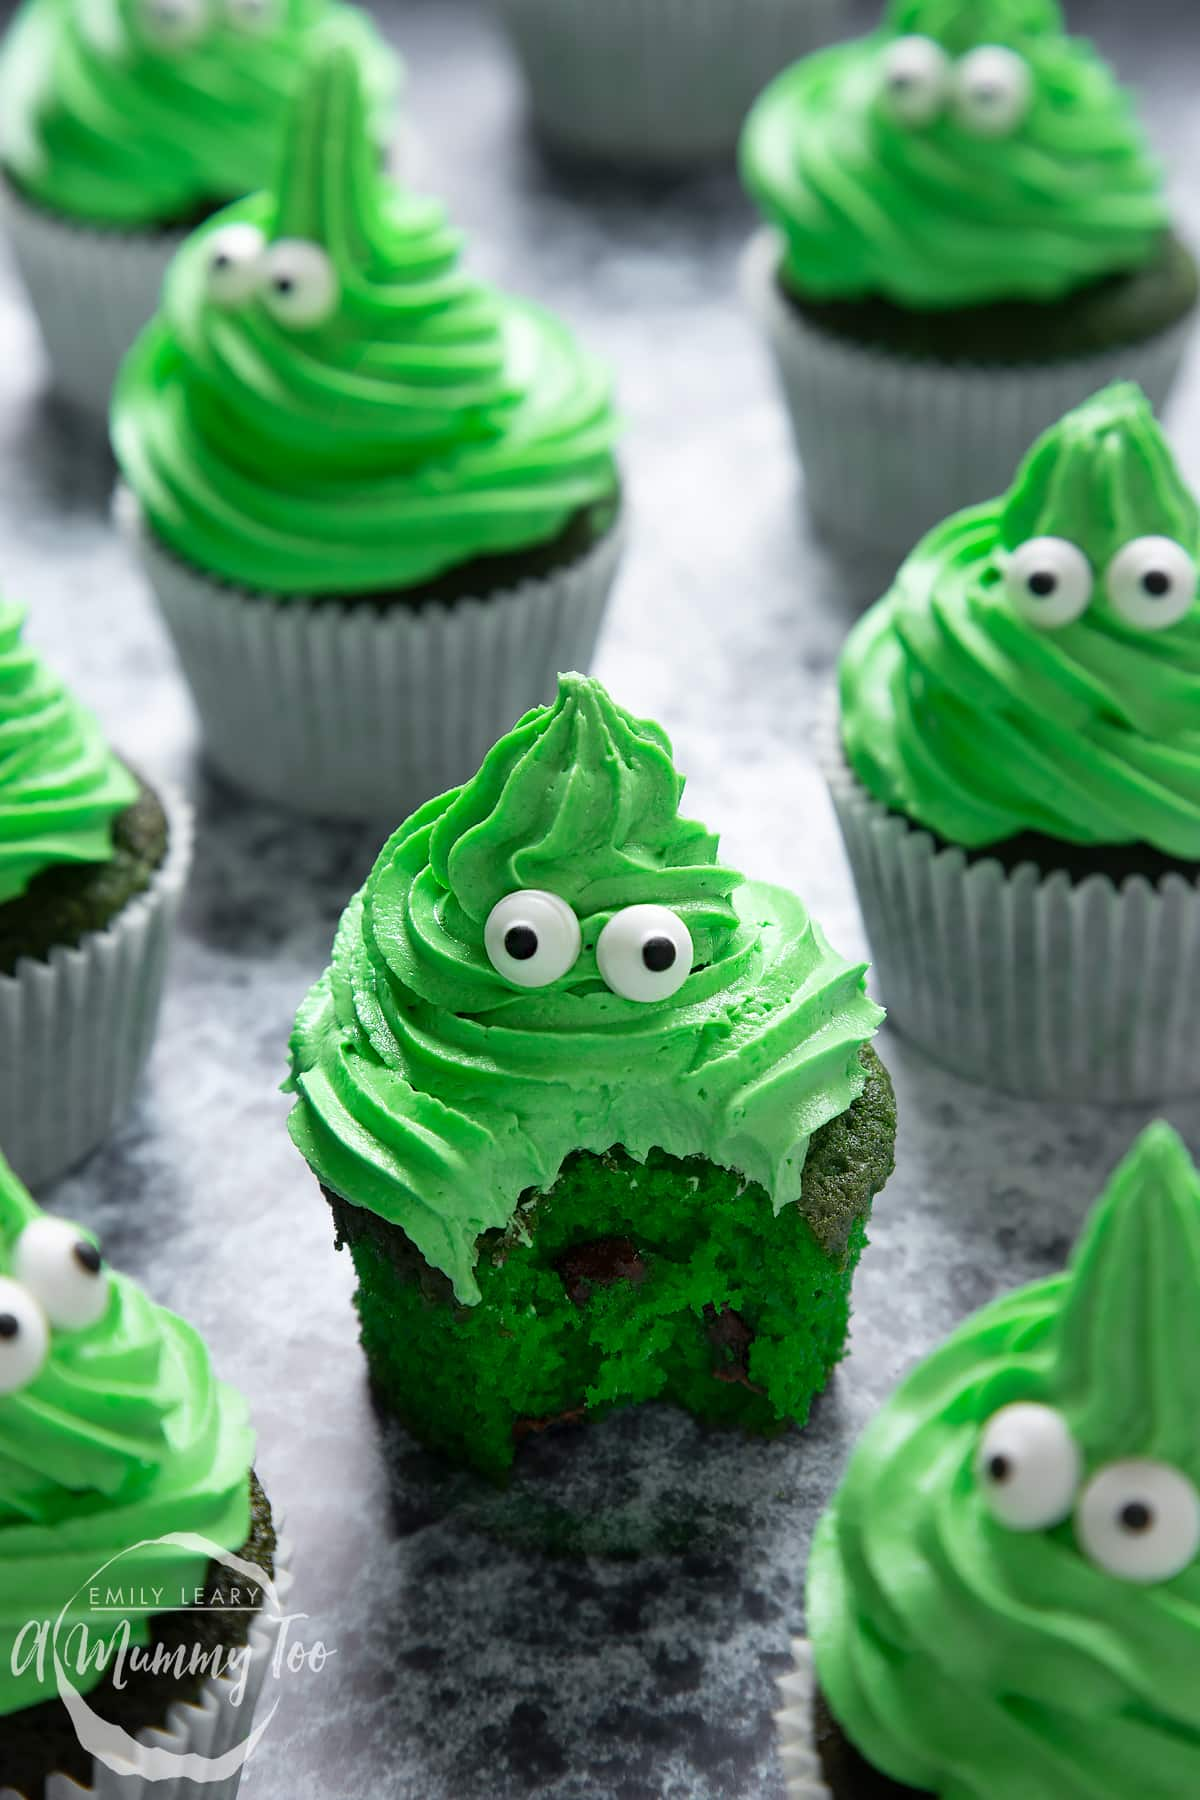 Green monster cakes made with dyed-green chocolate chip cupcakes topped with green peppermint frosting with added candy eyes. One has been bitten open.